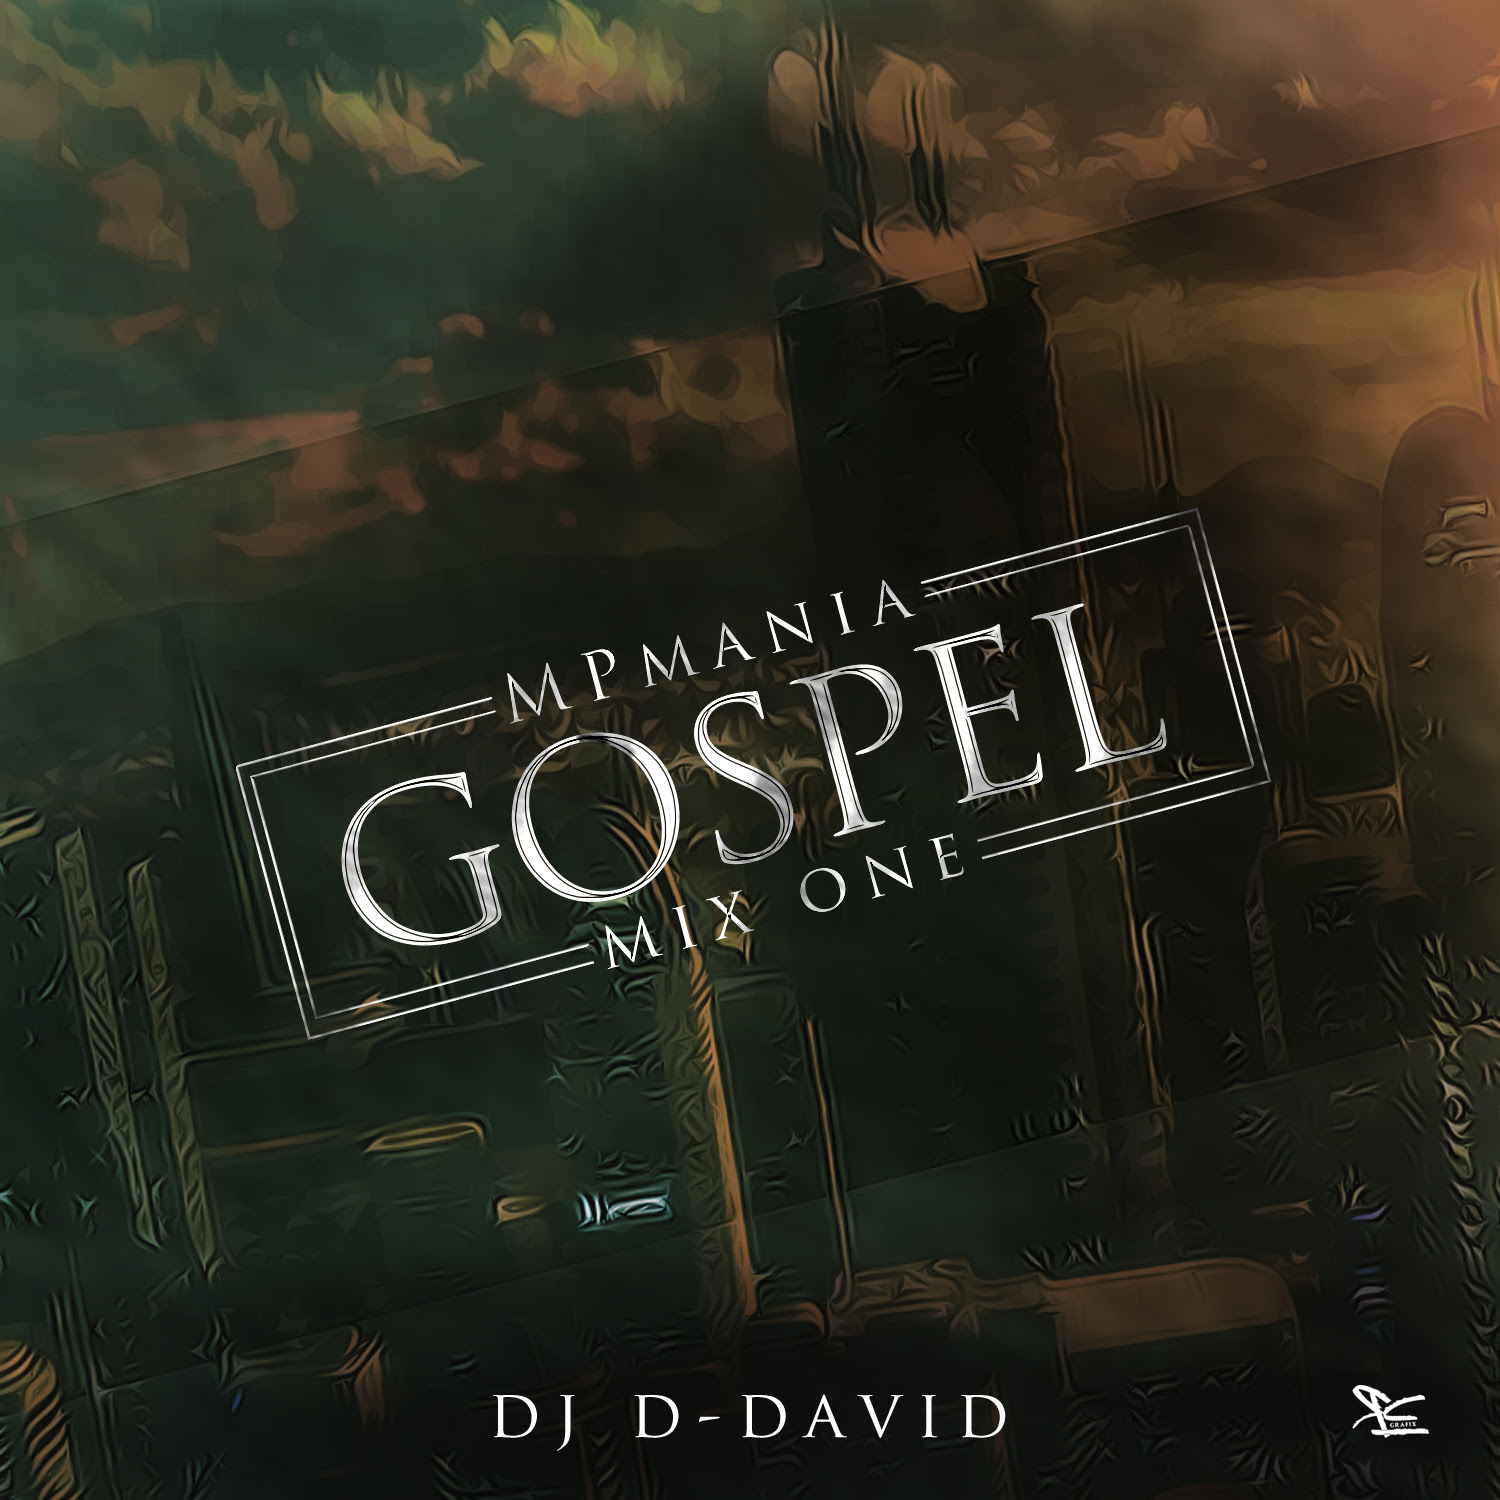 Dj D-David - MPmania Gospel Mix (one)